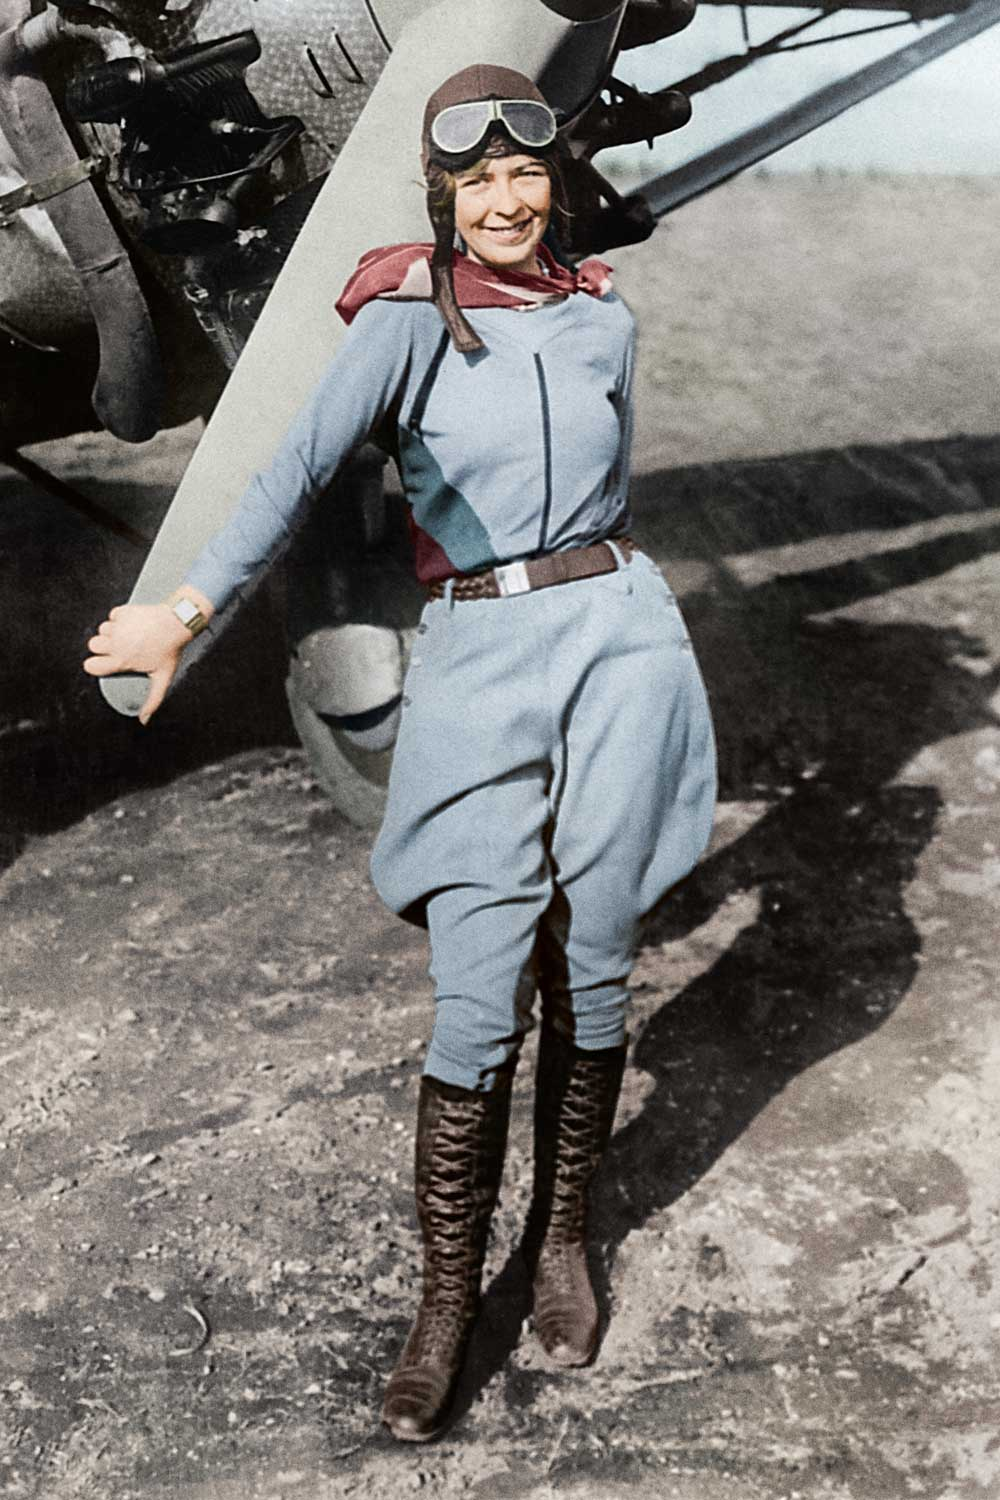 American aviator, Elinor Smith was once the youngest licensed pilot in the world at age 16, she later also became the first woman test pilot for both Fairchild and Bellanca, presently known as Avia Bellanca